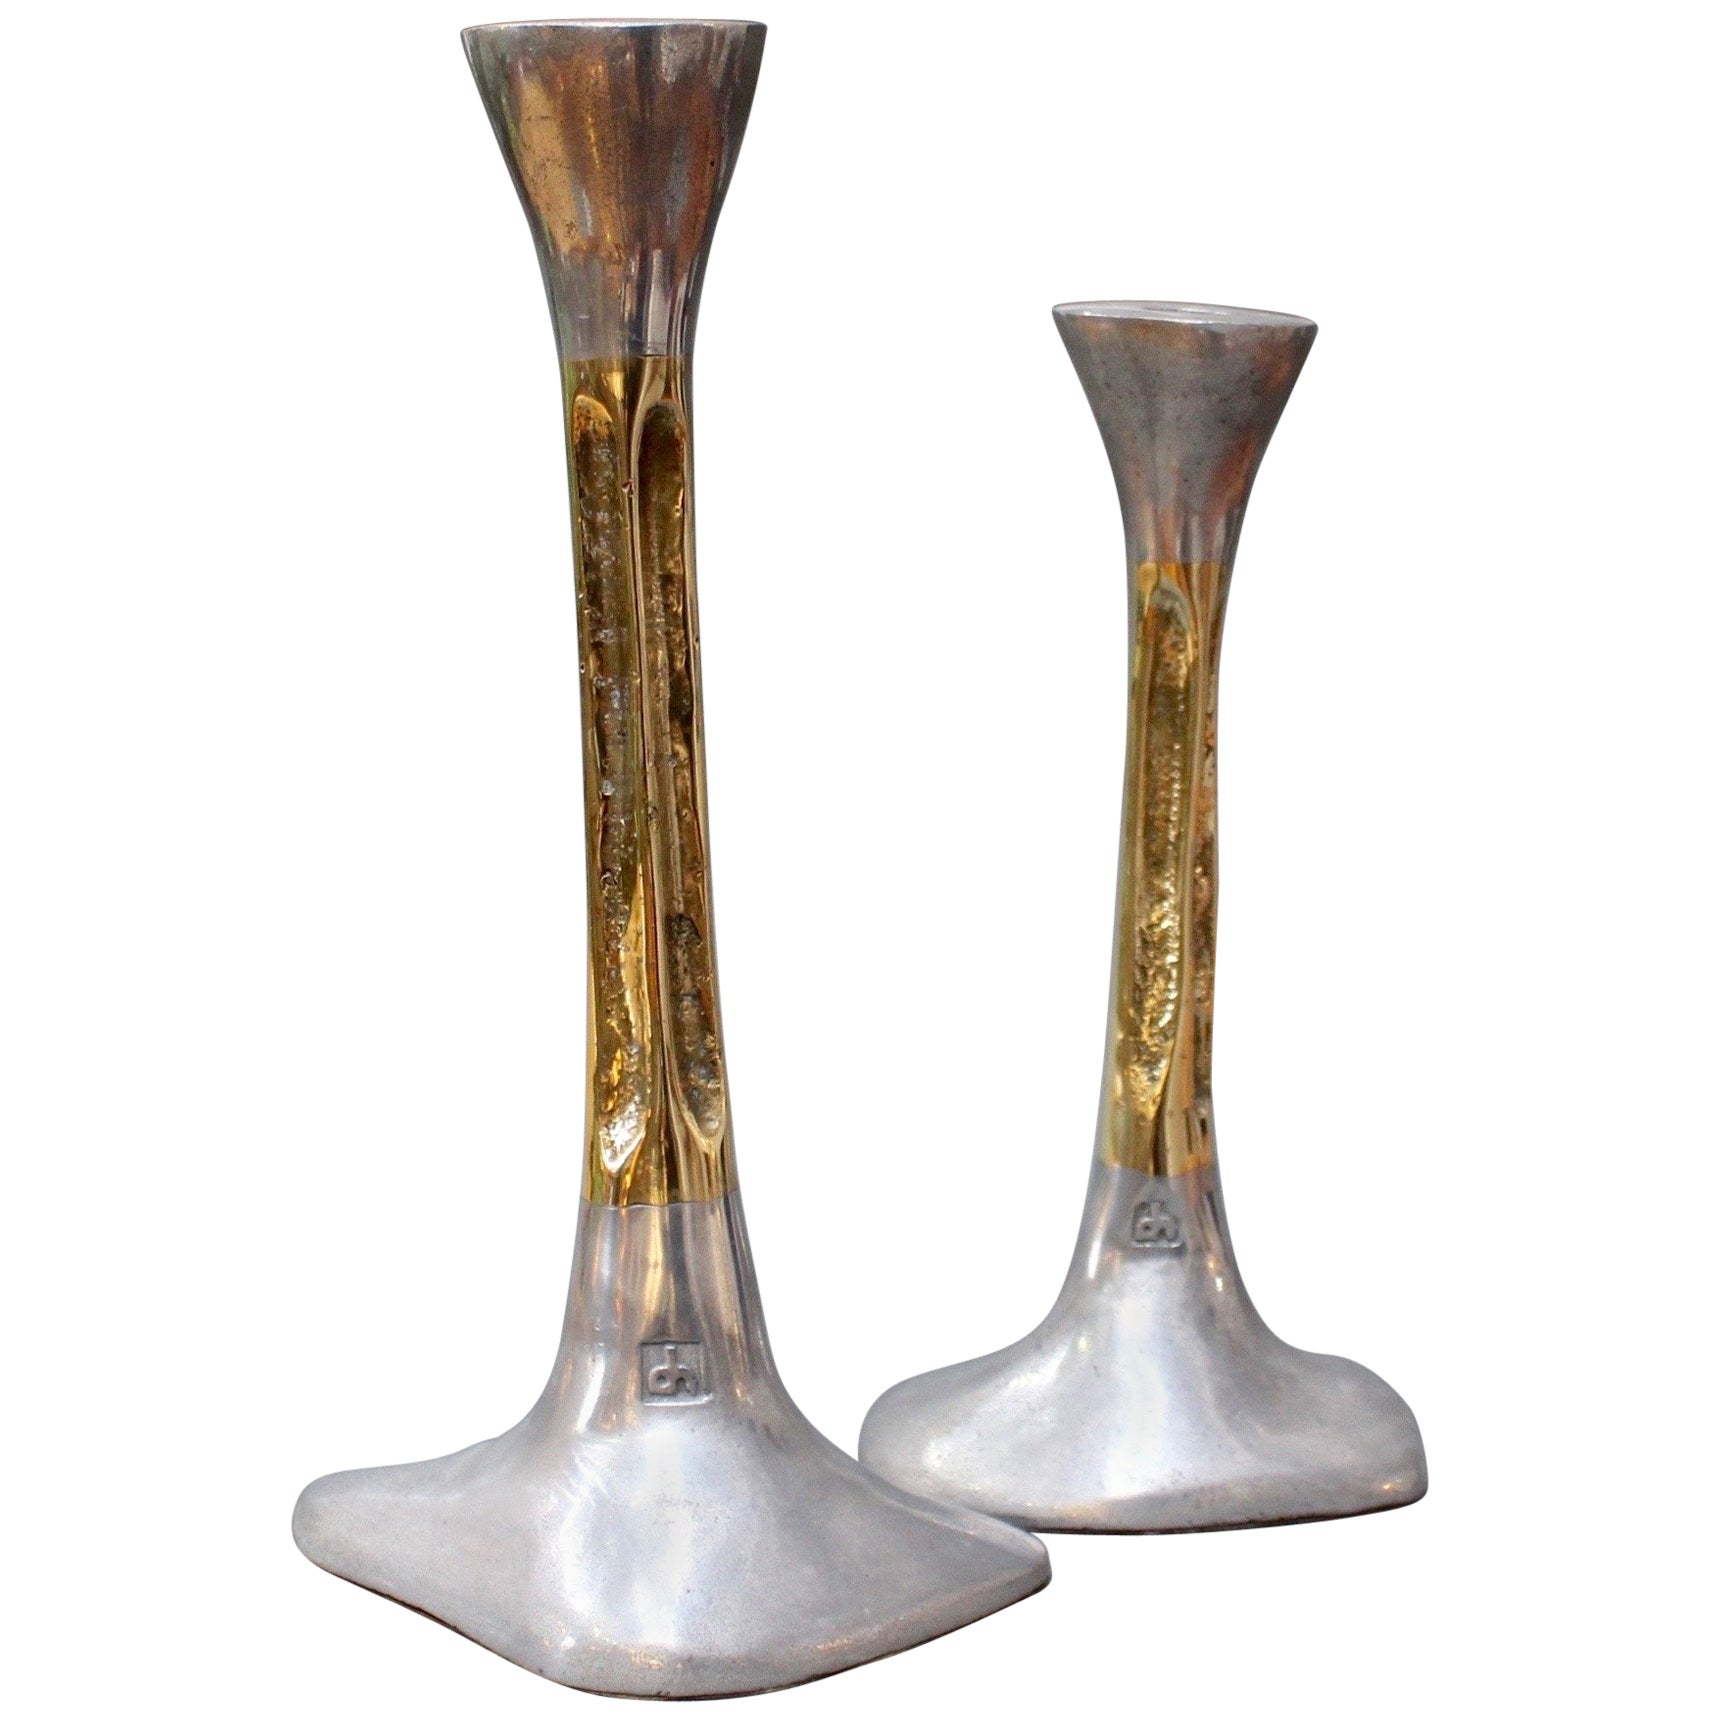 Pair of Brutalist Style Aluminium and Brass Candlesticks by David Marshall 1980s